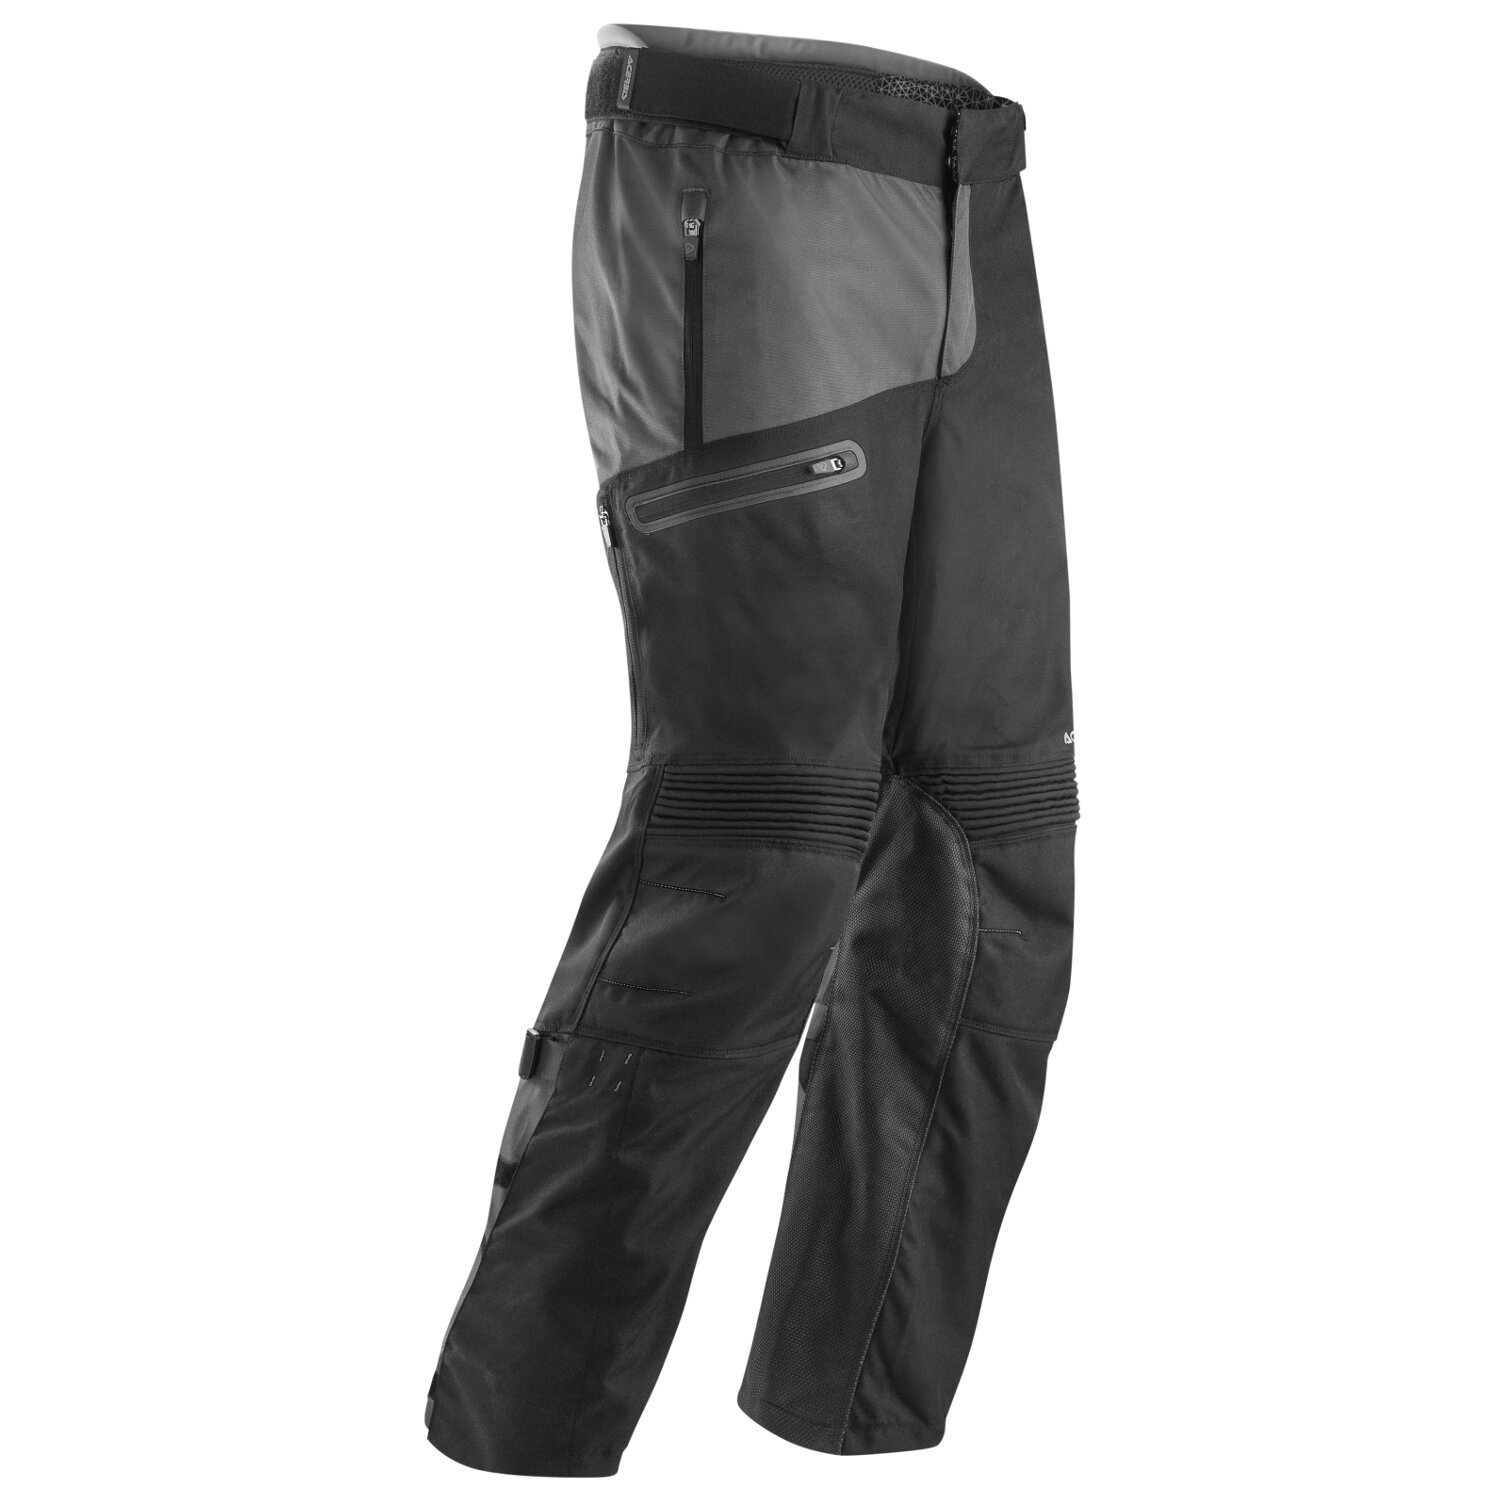 Motocross & Off-Road Pants Acerbis Enduro One Baggy Pants Trousers Over Boot Fit Off-Road Jeans Motocross